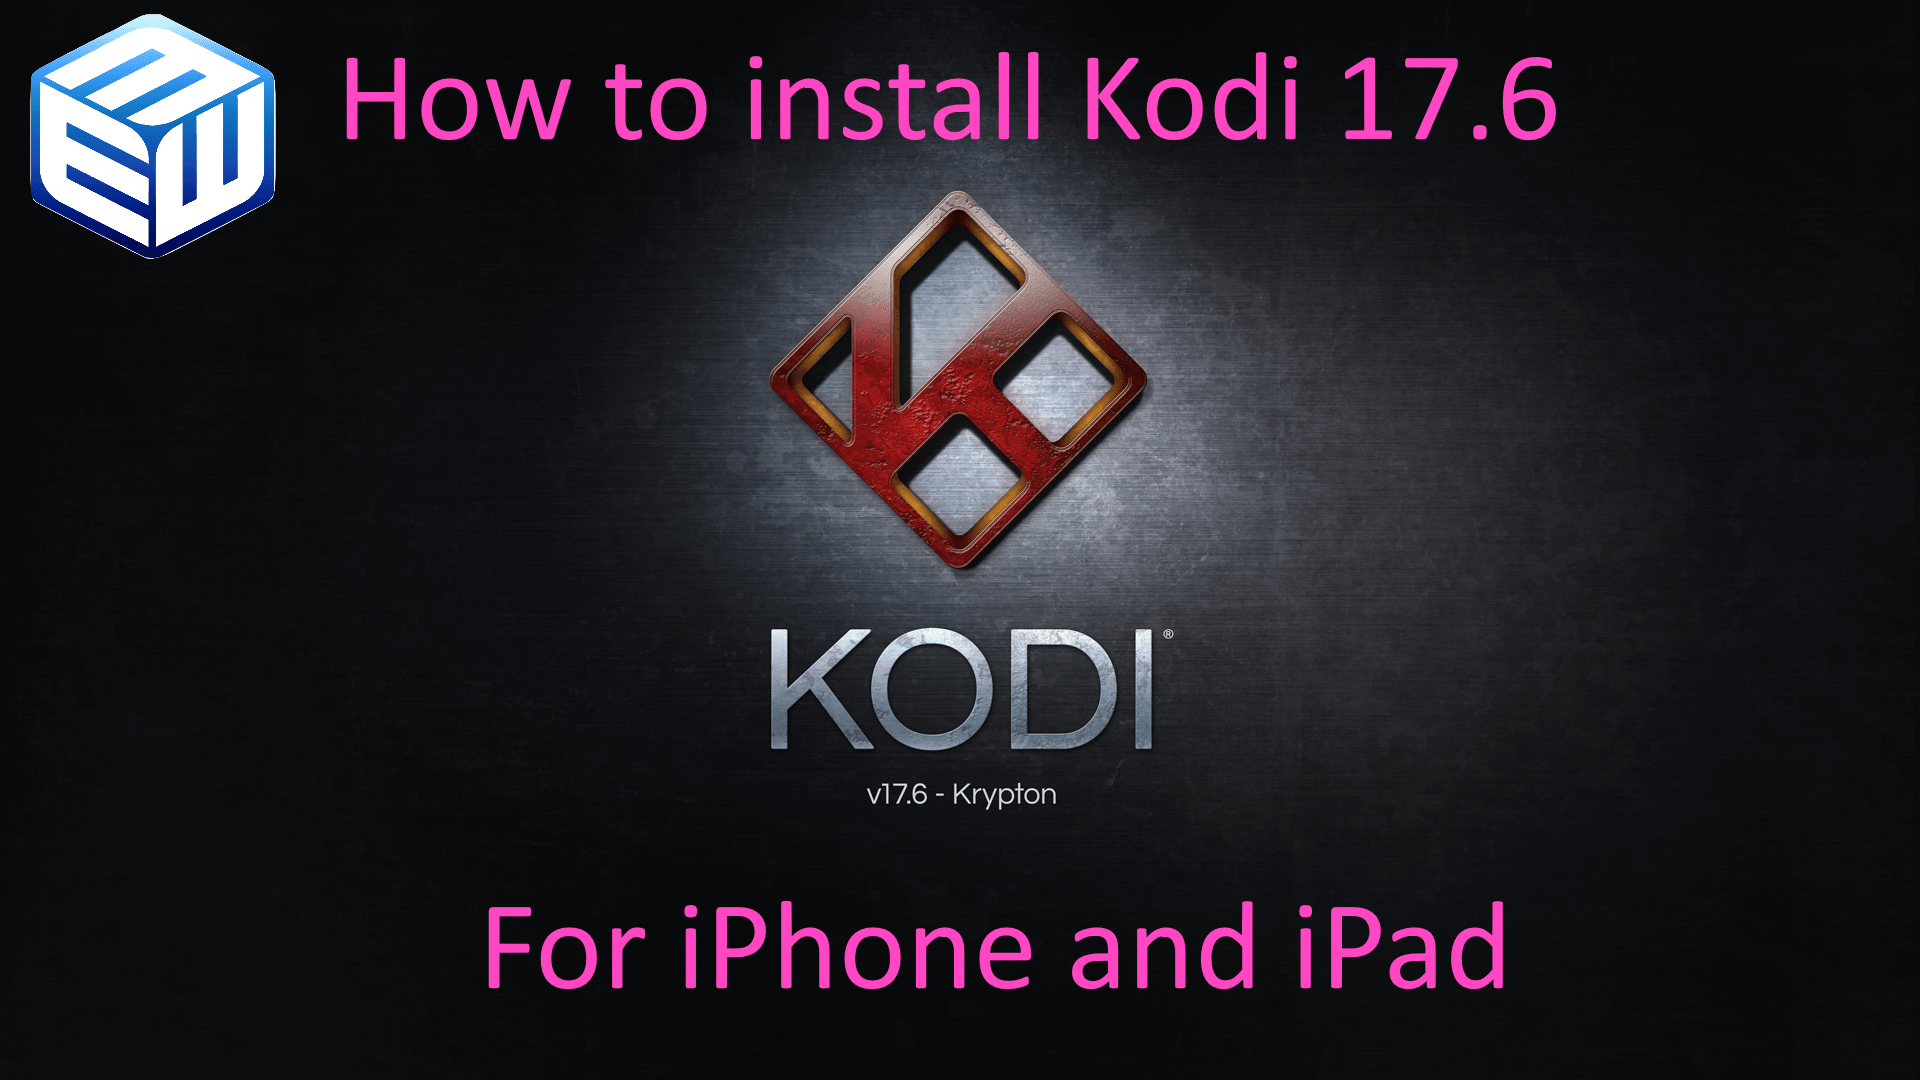 Kodi 17.6 released for iPhone and iPad